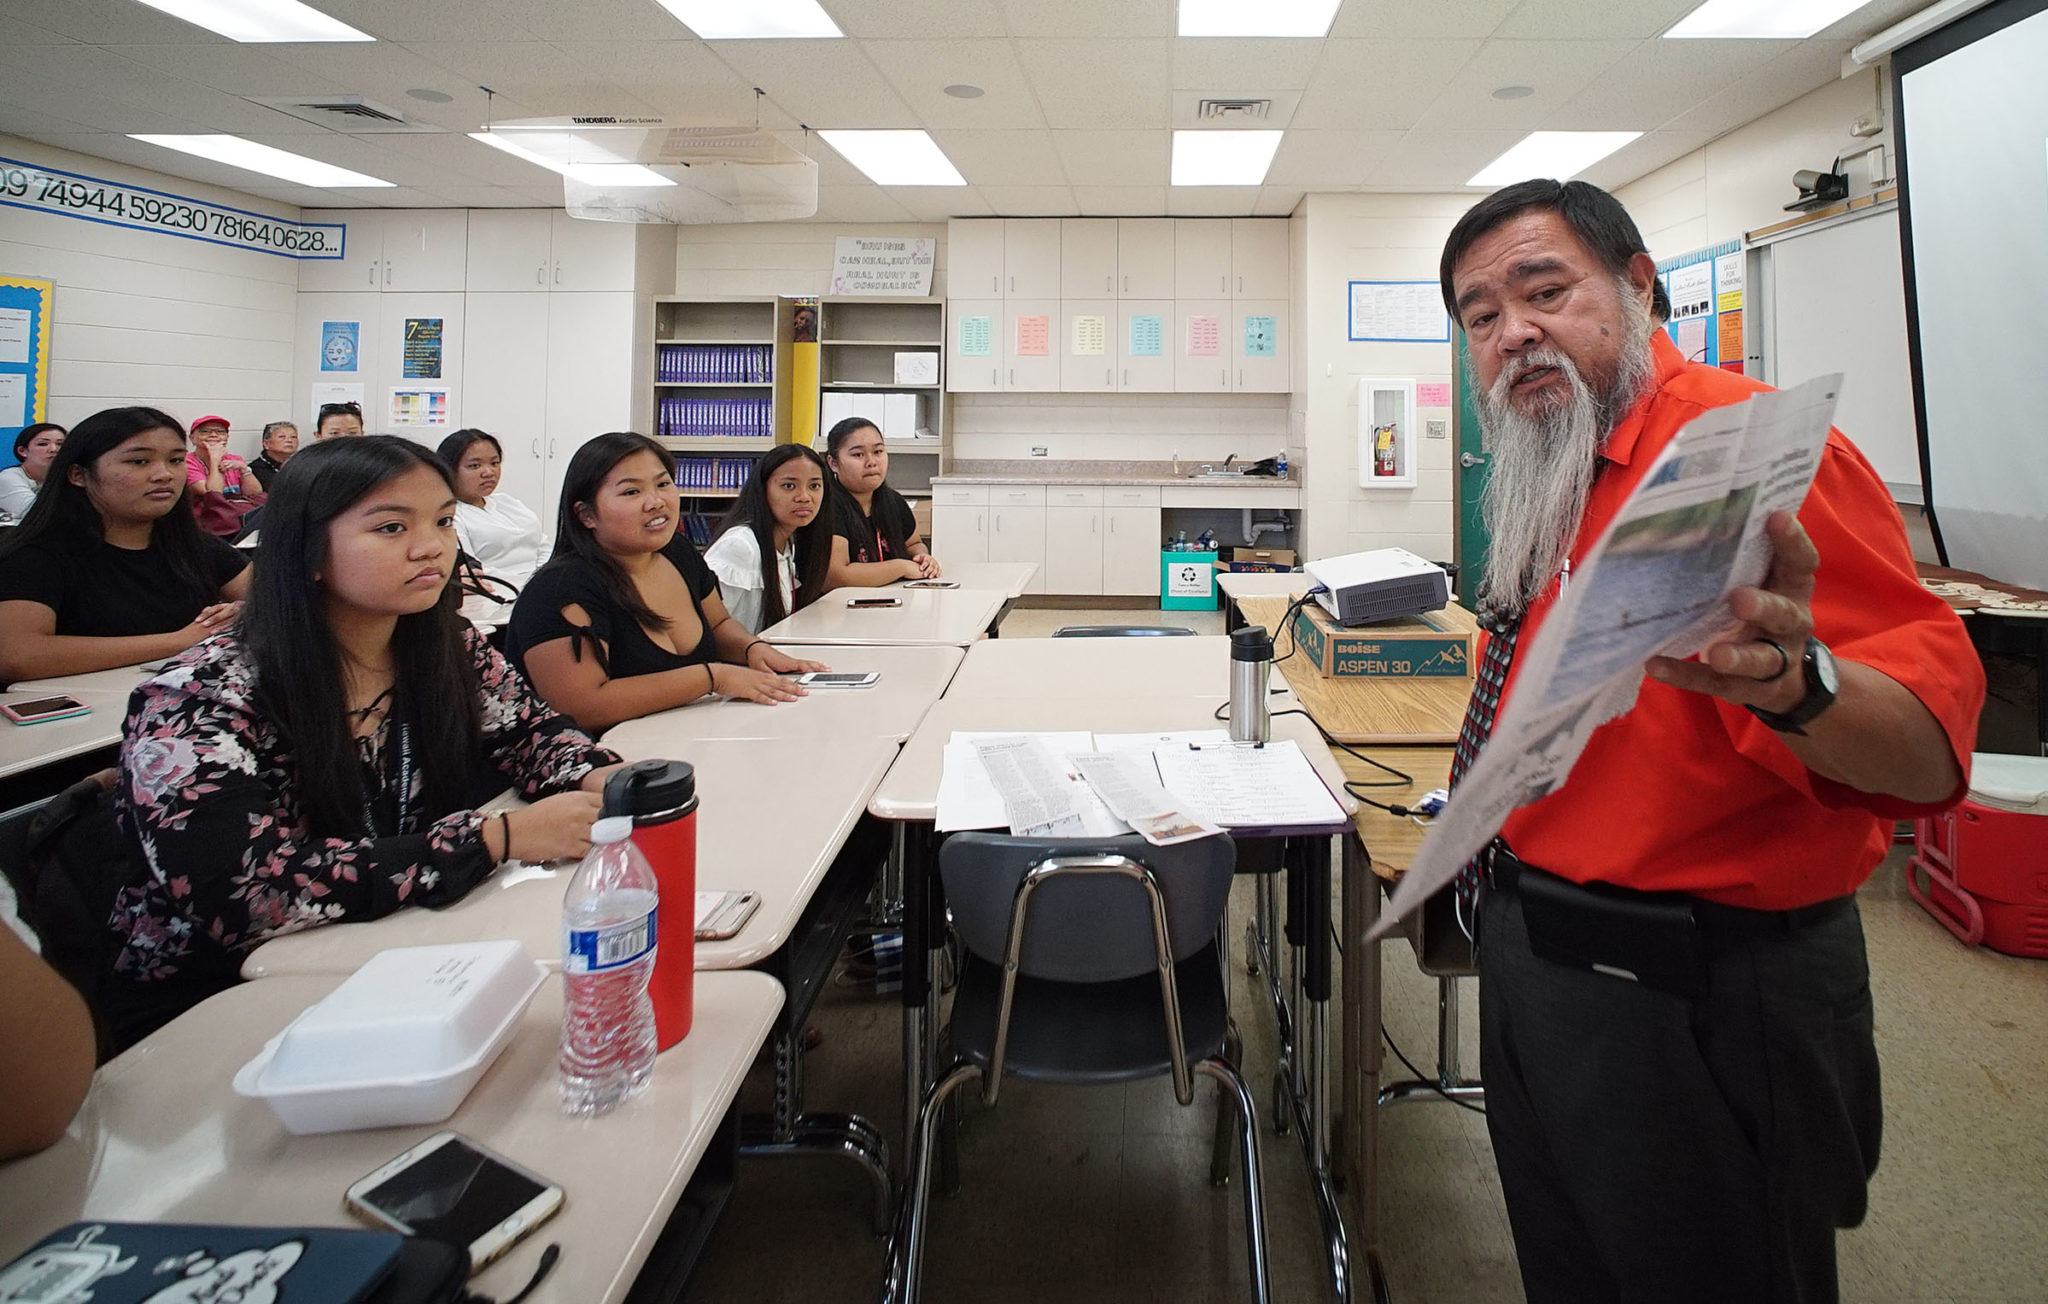 Ricardo Custodio,MD Associate Professor and Chair of Health Sciences teaches a college class at Waipahu High School.